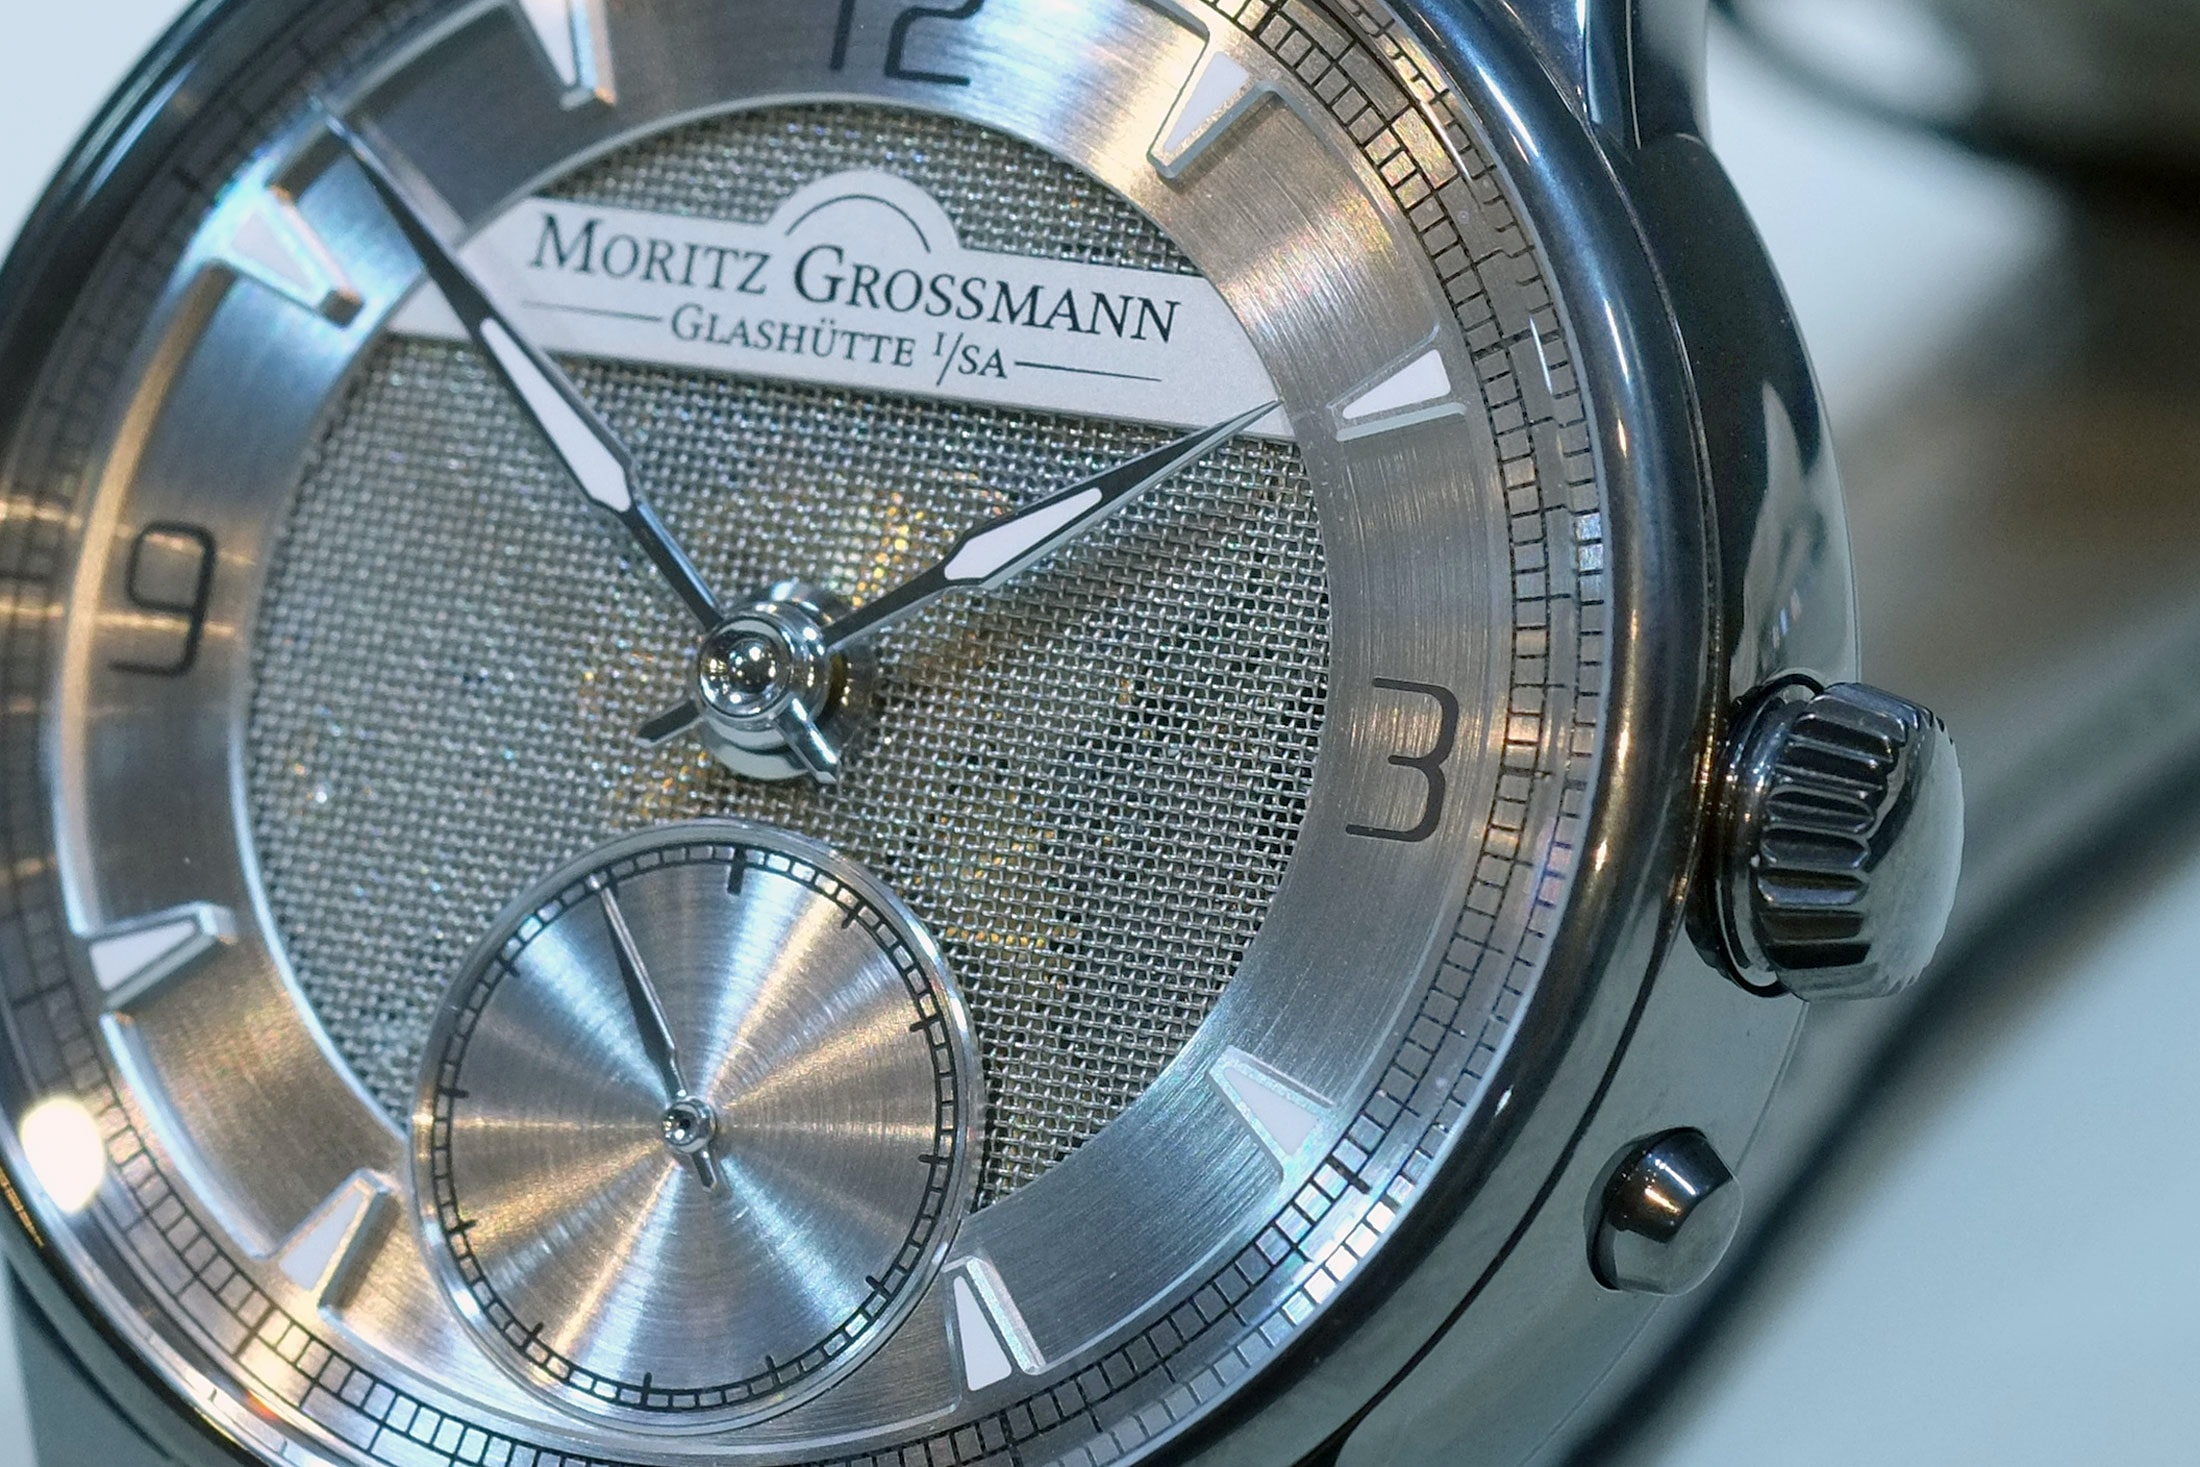 atum pure m moritz grossmann mesh dial Hands-On: The Moritz Grossmann Atum Pure M, A Polarizing But Fresh Design From Glashütte Hands-On: The Moritz Grossmann Atum Pure M, A Polarizing But Fresh Design From Glashütte mesh 6